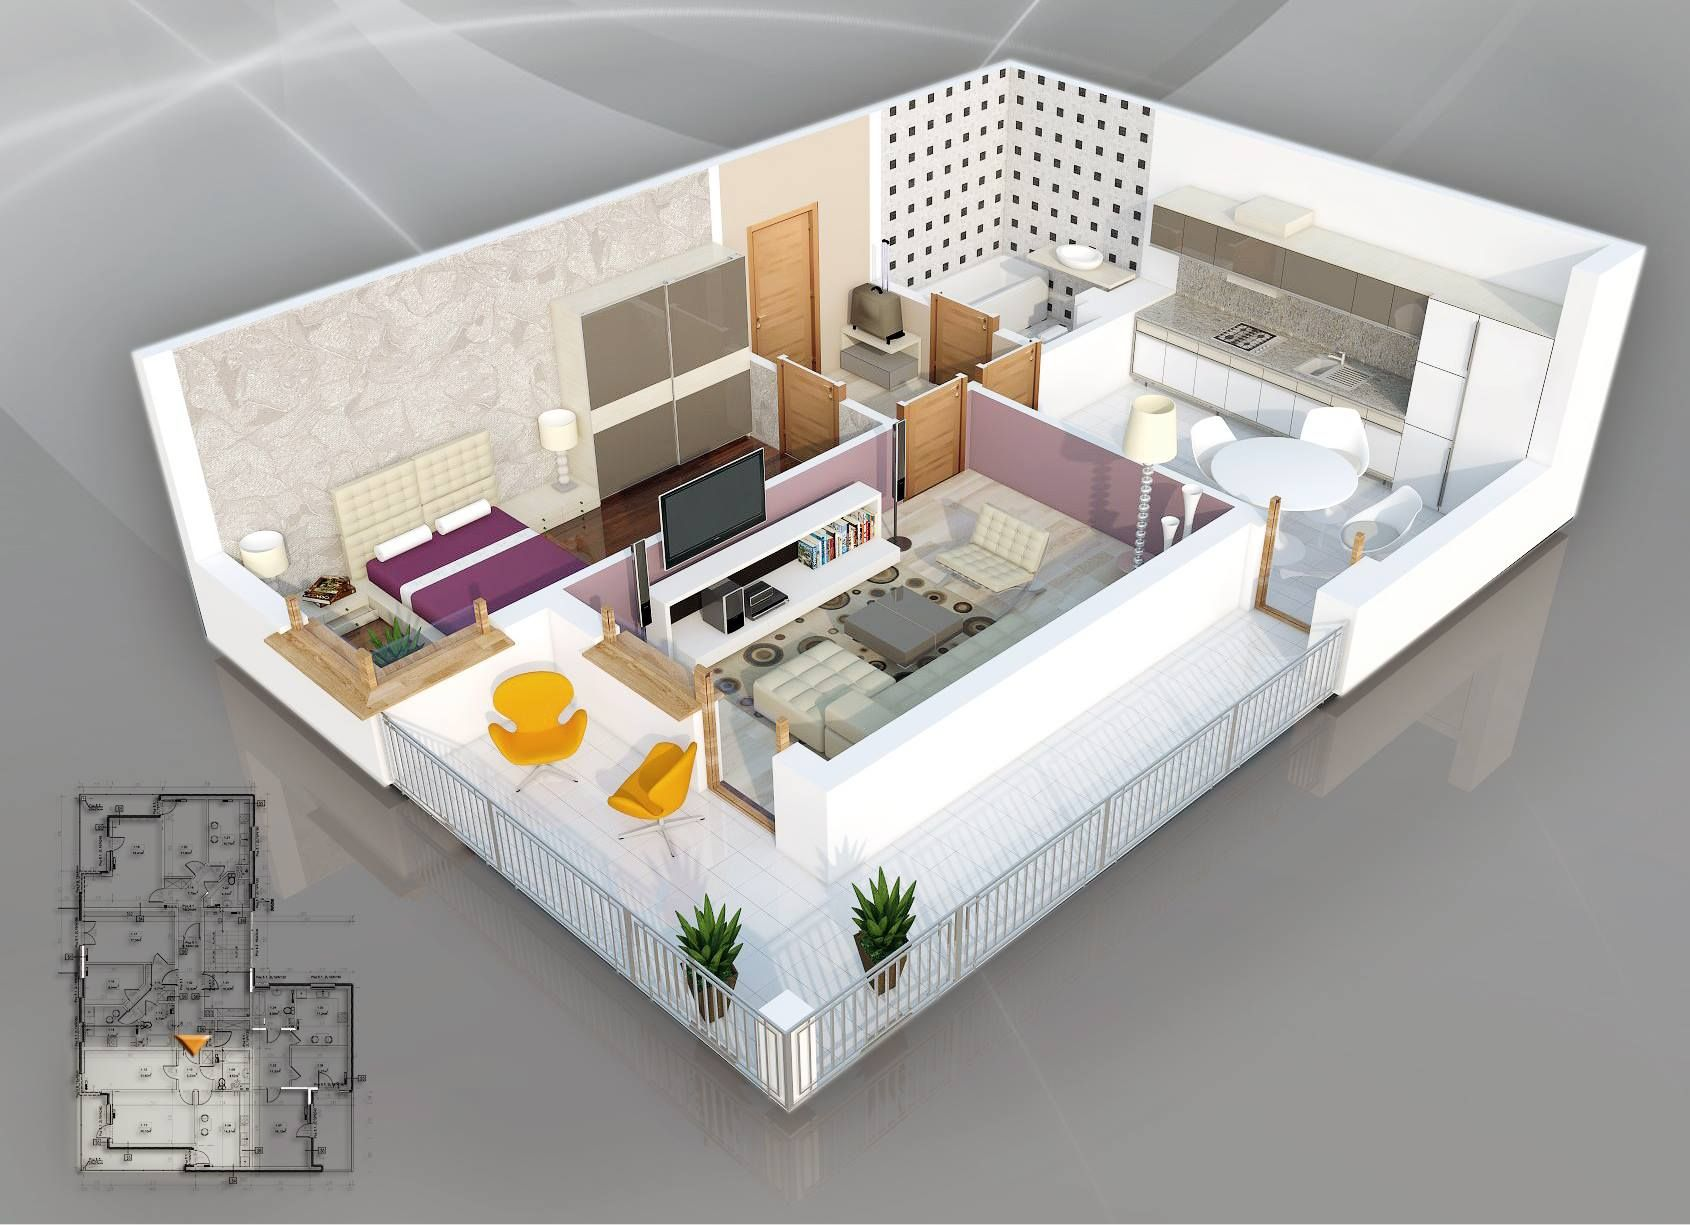 50 one 1 bedroom apartment house plans bedroom - Mini cocina ikea ...